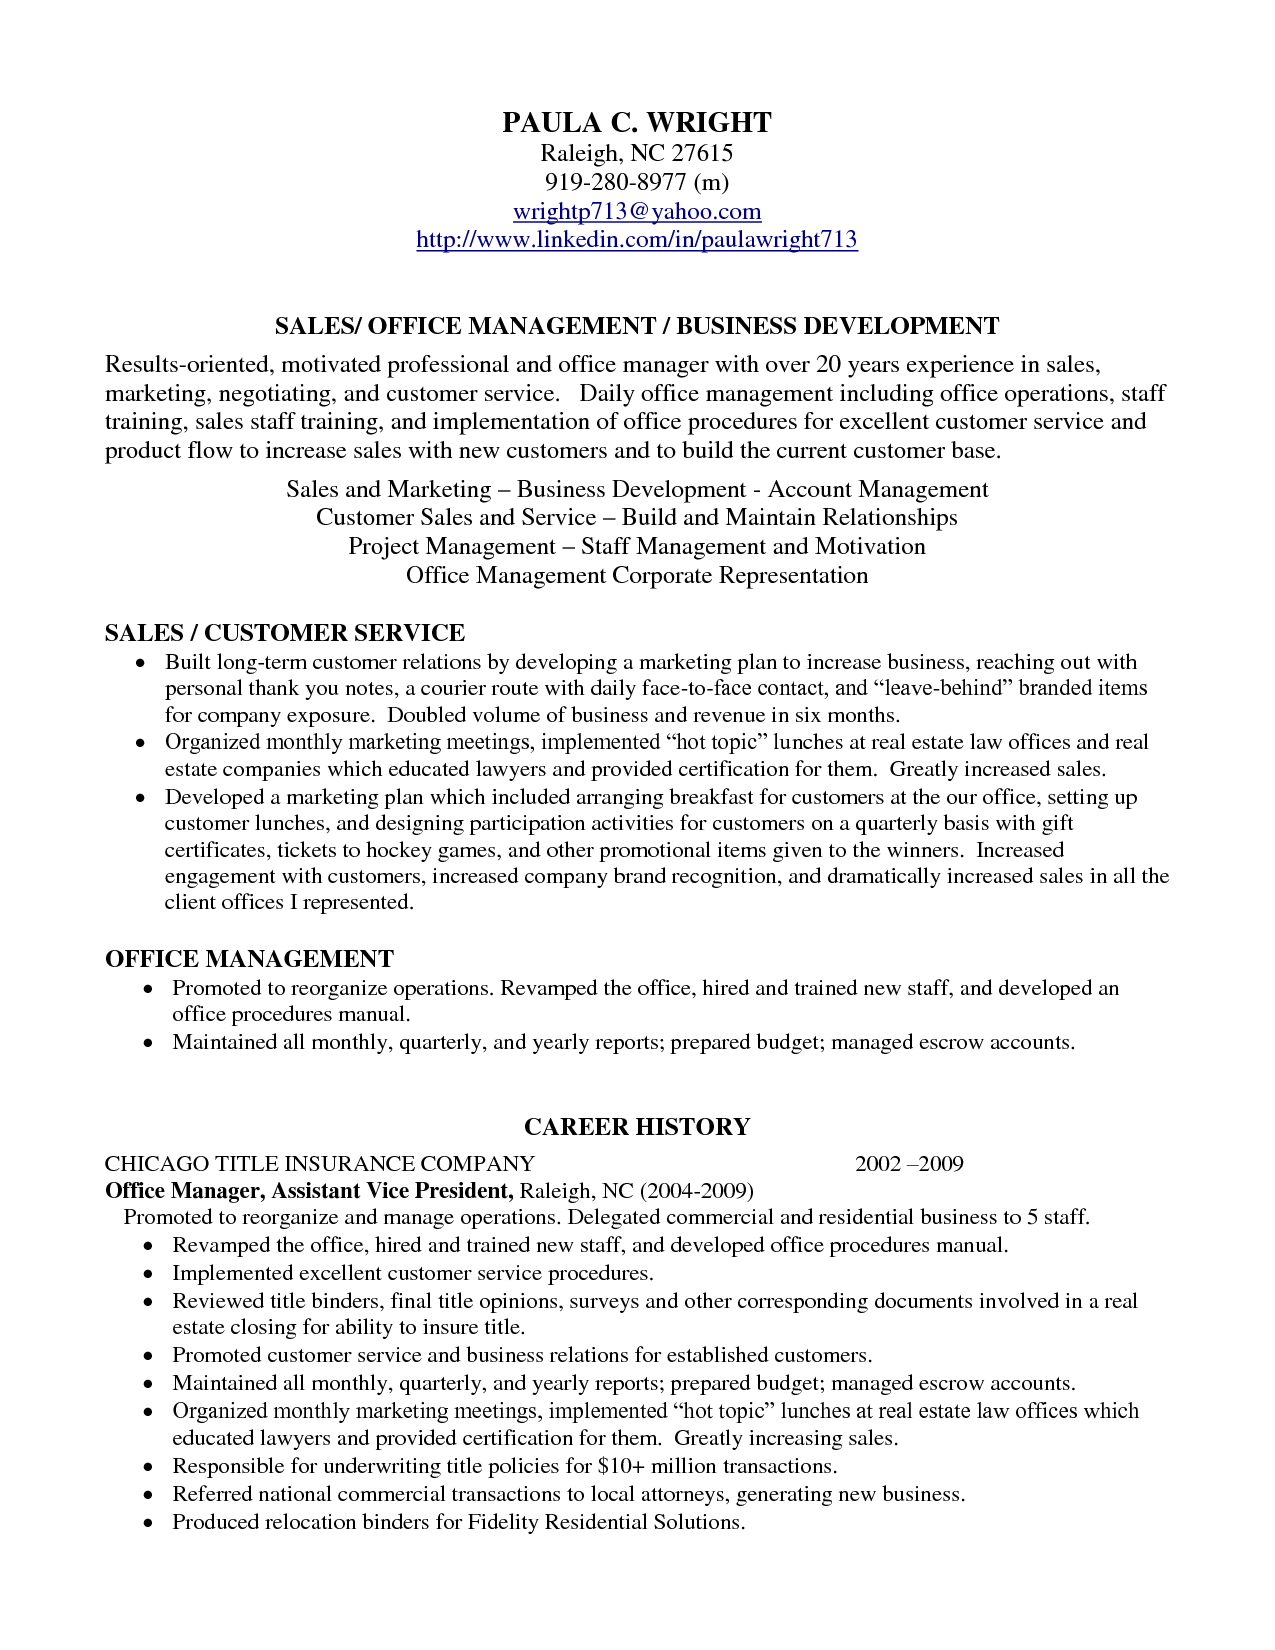 Profile On Resume Examples Professional profile resume